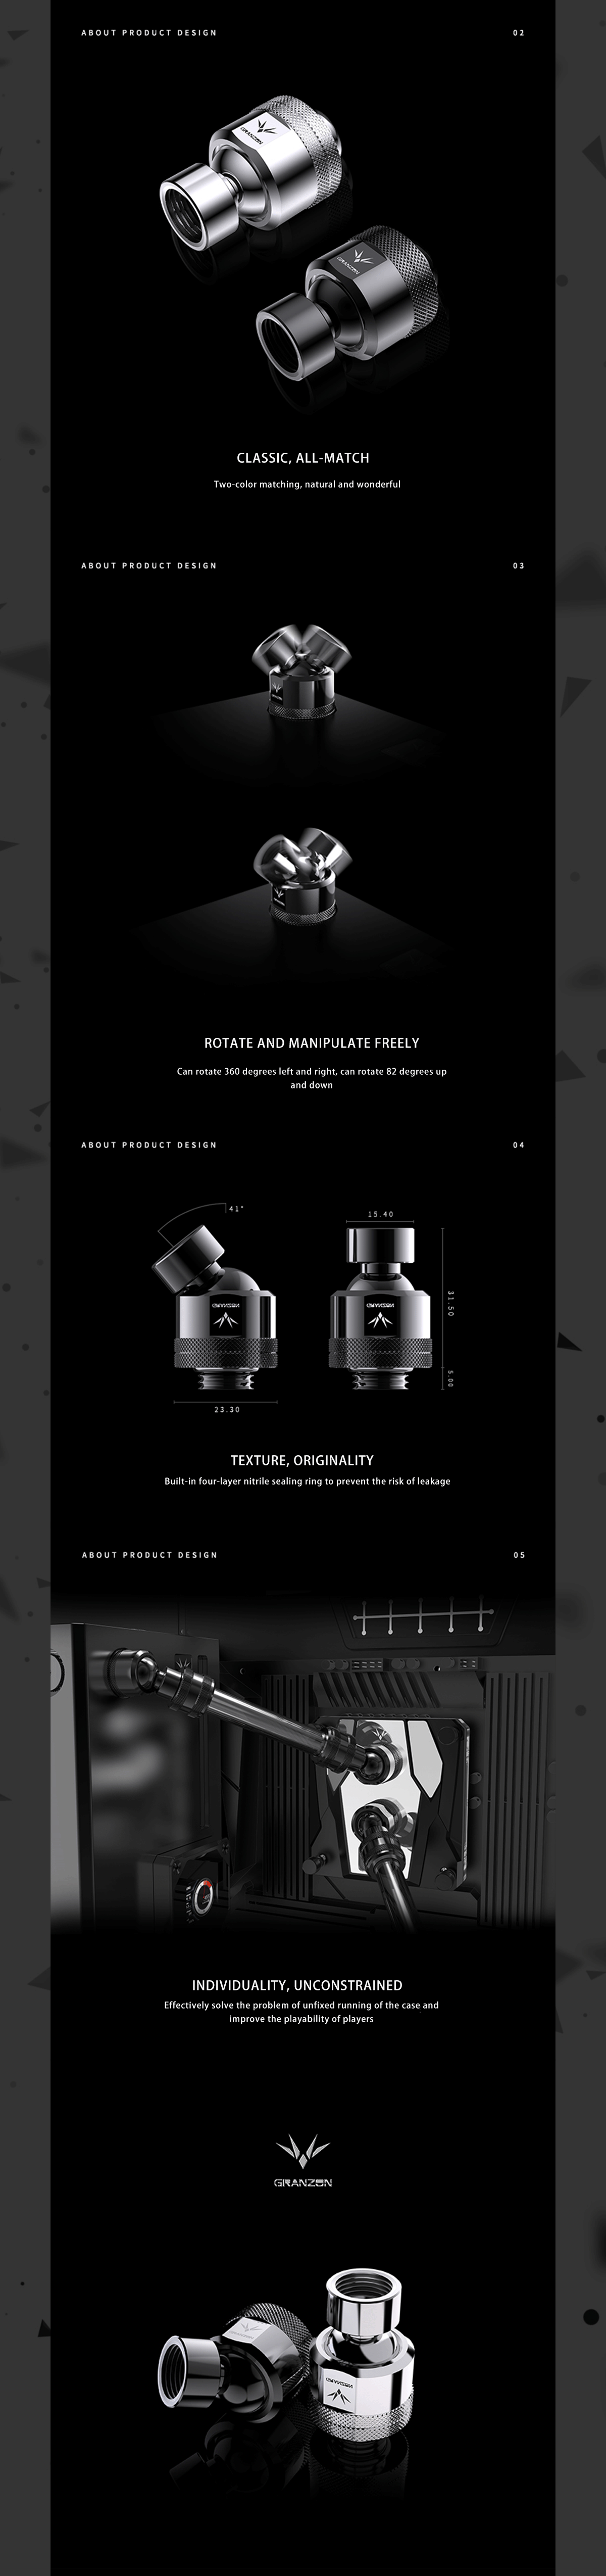 Granzon GD-X Freely Rotate Degree Fitting , Black Silver 360° Rotary G1/4'' Thread Universal Water Cooling Adaptor